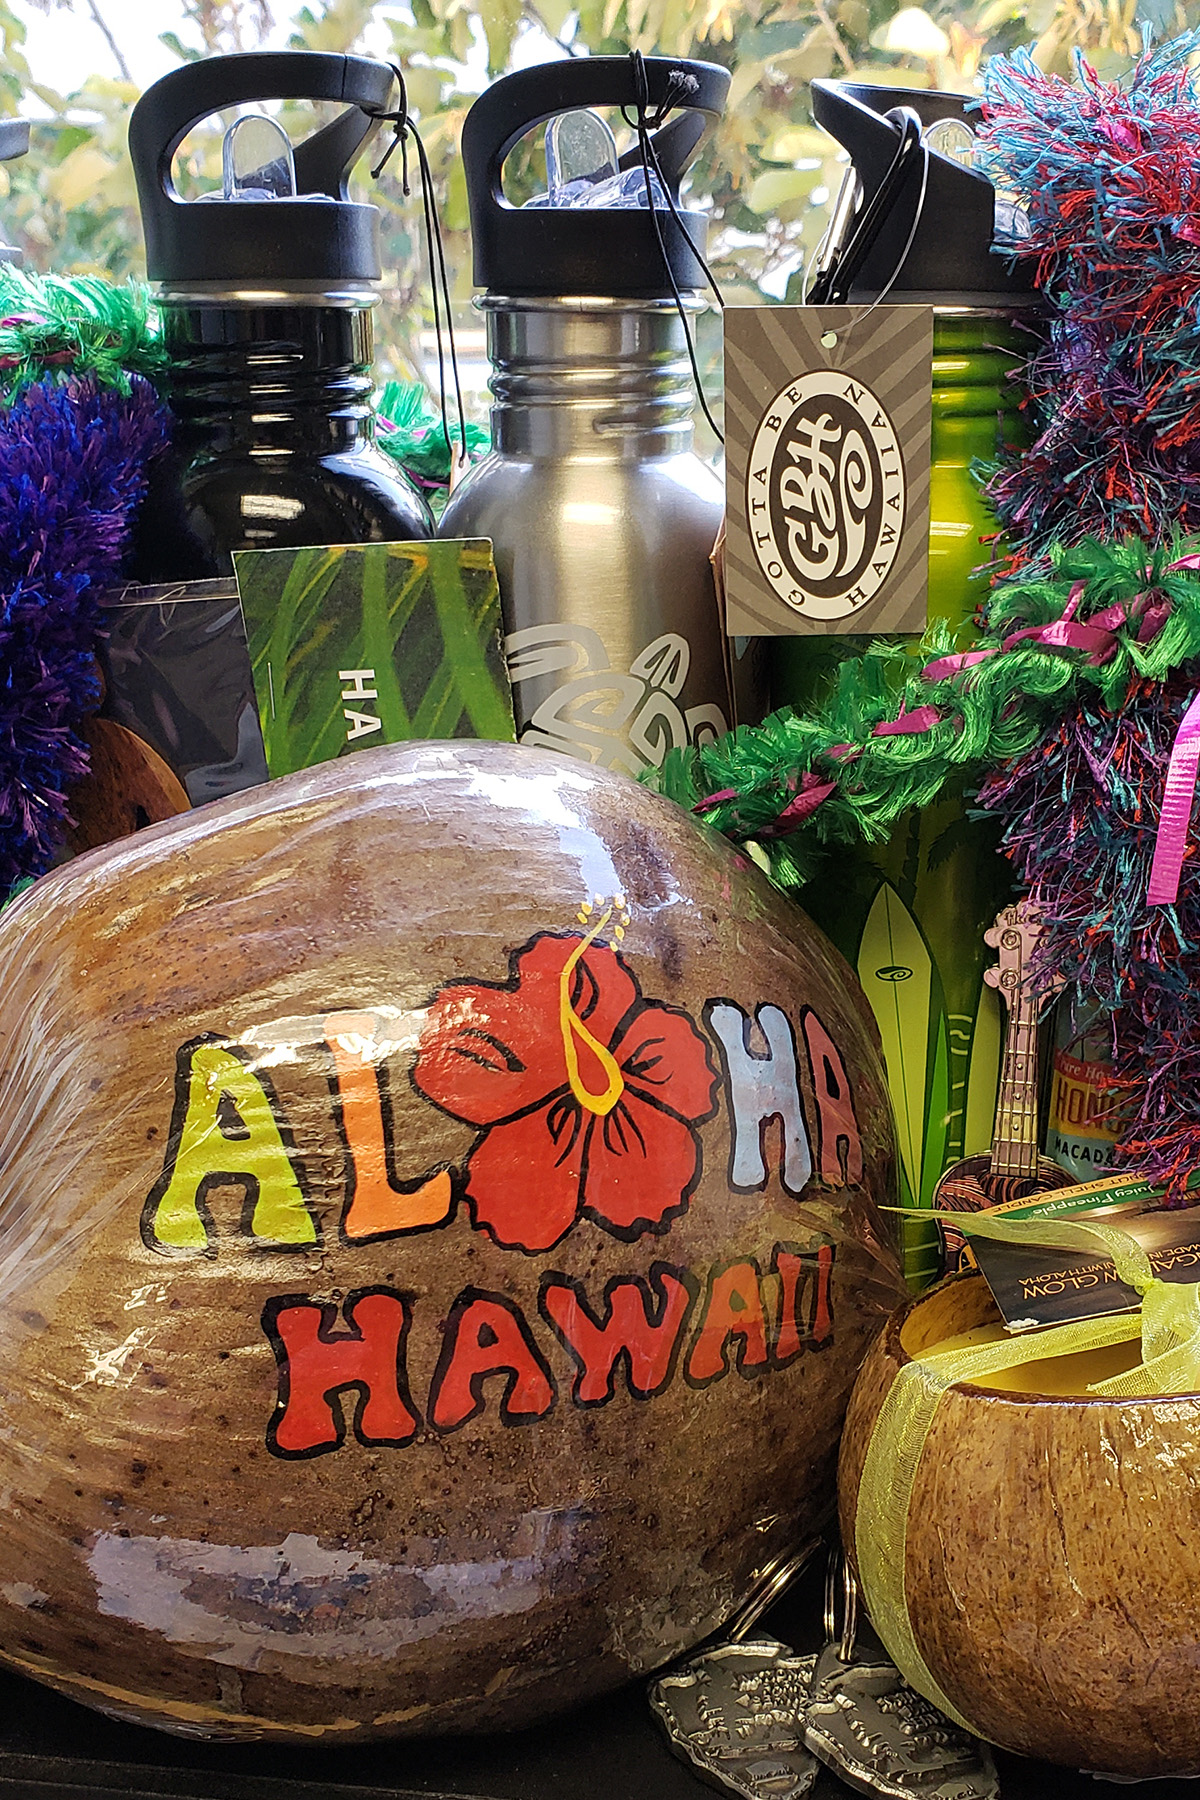 A collection of Hawaii-themed prizes given out in Descriptathon 5 (Aug. 27-29, 2019) are shown, amassed on a window ledge, with tropical foilage outside of the window and in the background. At the forefront of this collection is a coconut painted with two words: 1. ALOHA (in multiple colors; the A is yellow, the L is orange, the O is a red hibiscus bloom, the H is light blue, and the final A is Peach, all in capital letters). And, 2. HAWAII, also in all caps, but this word only is in red, and it is centered and right below the